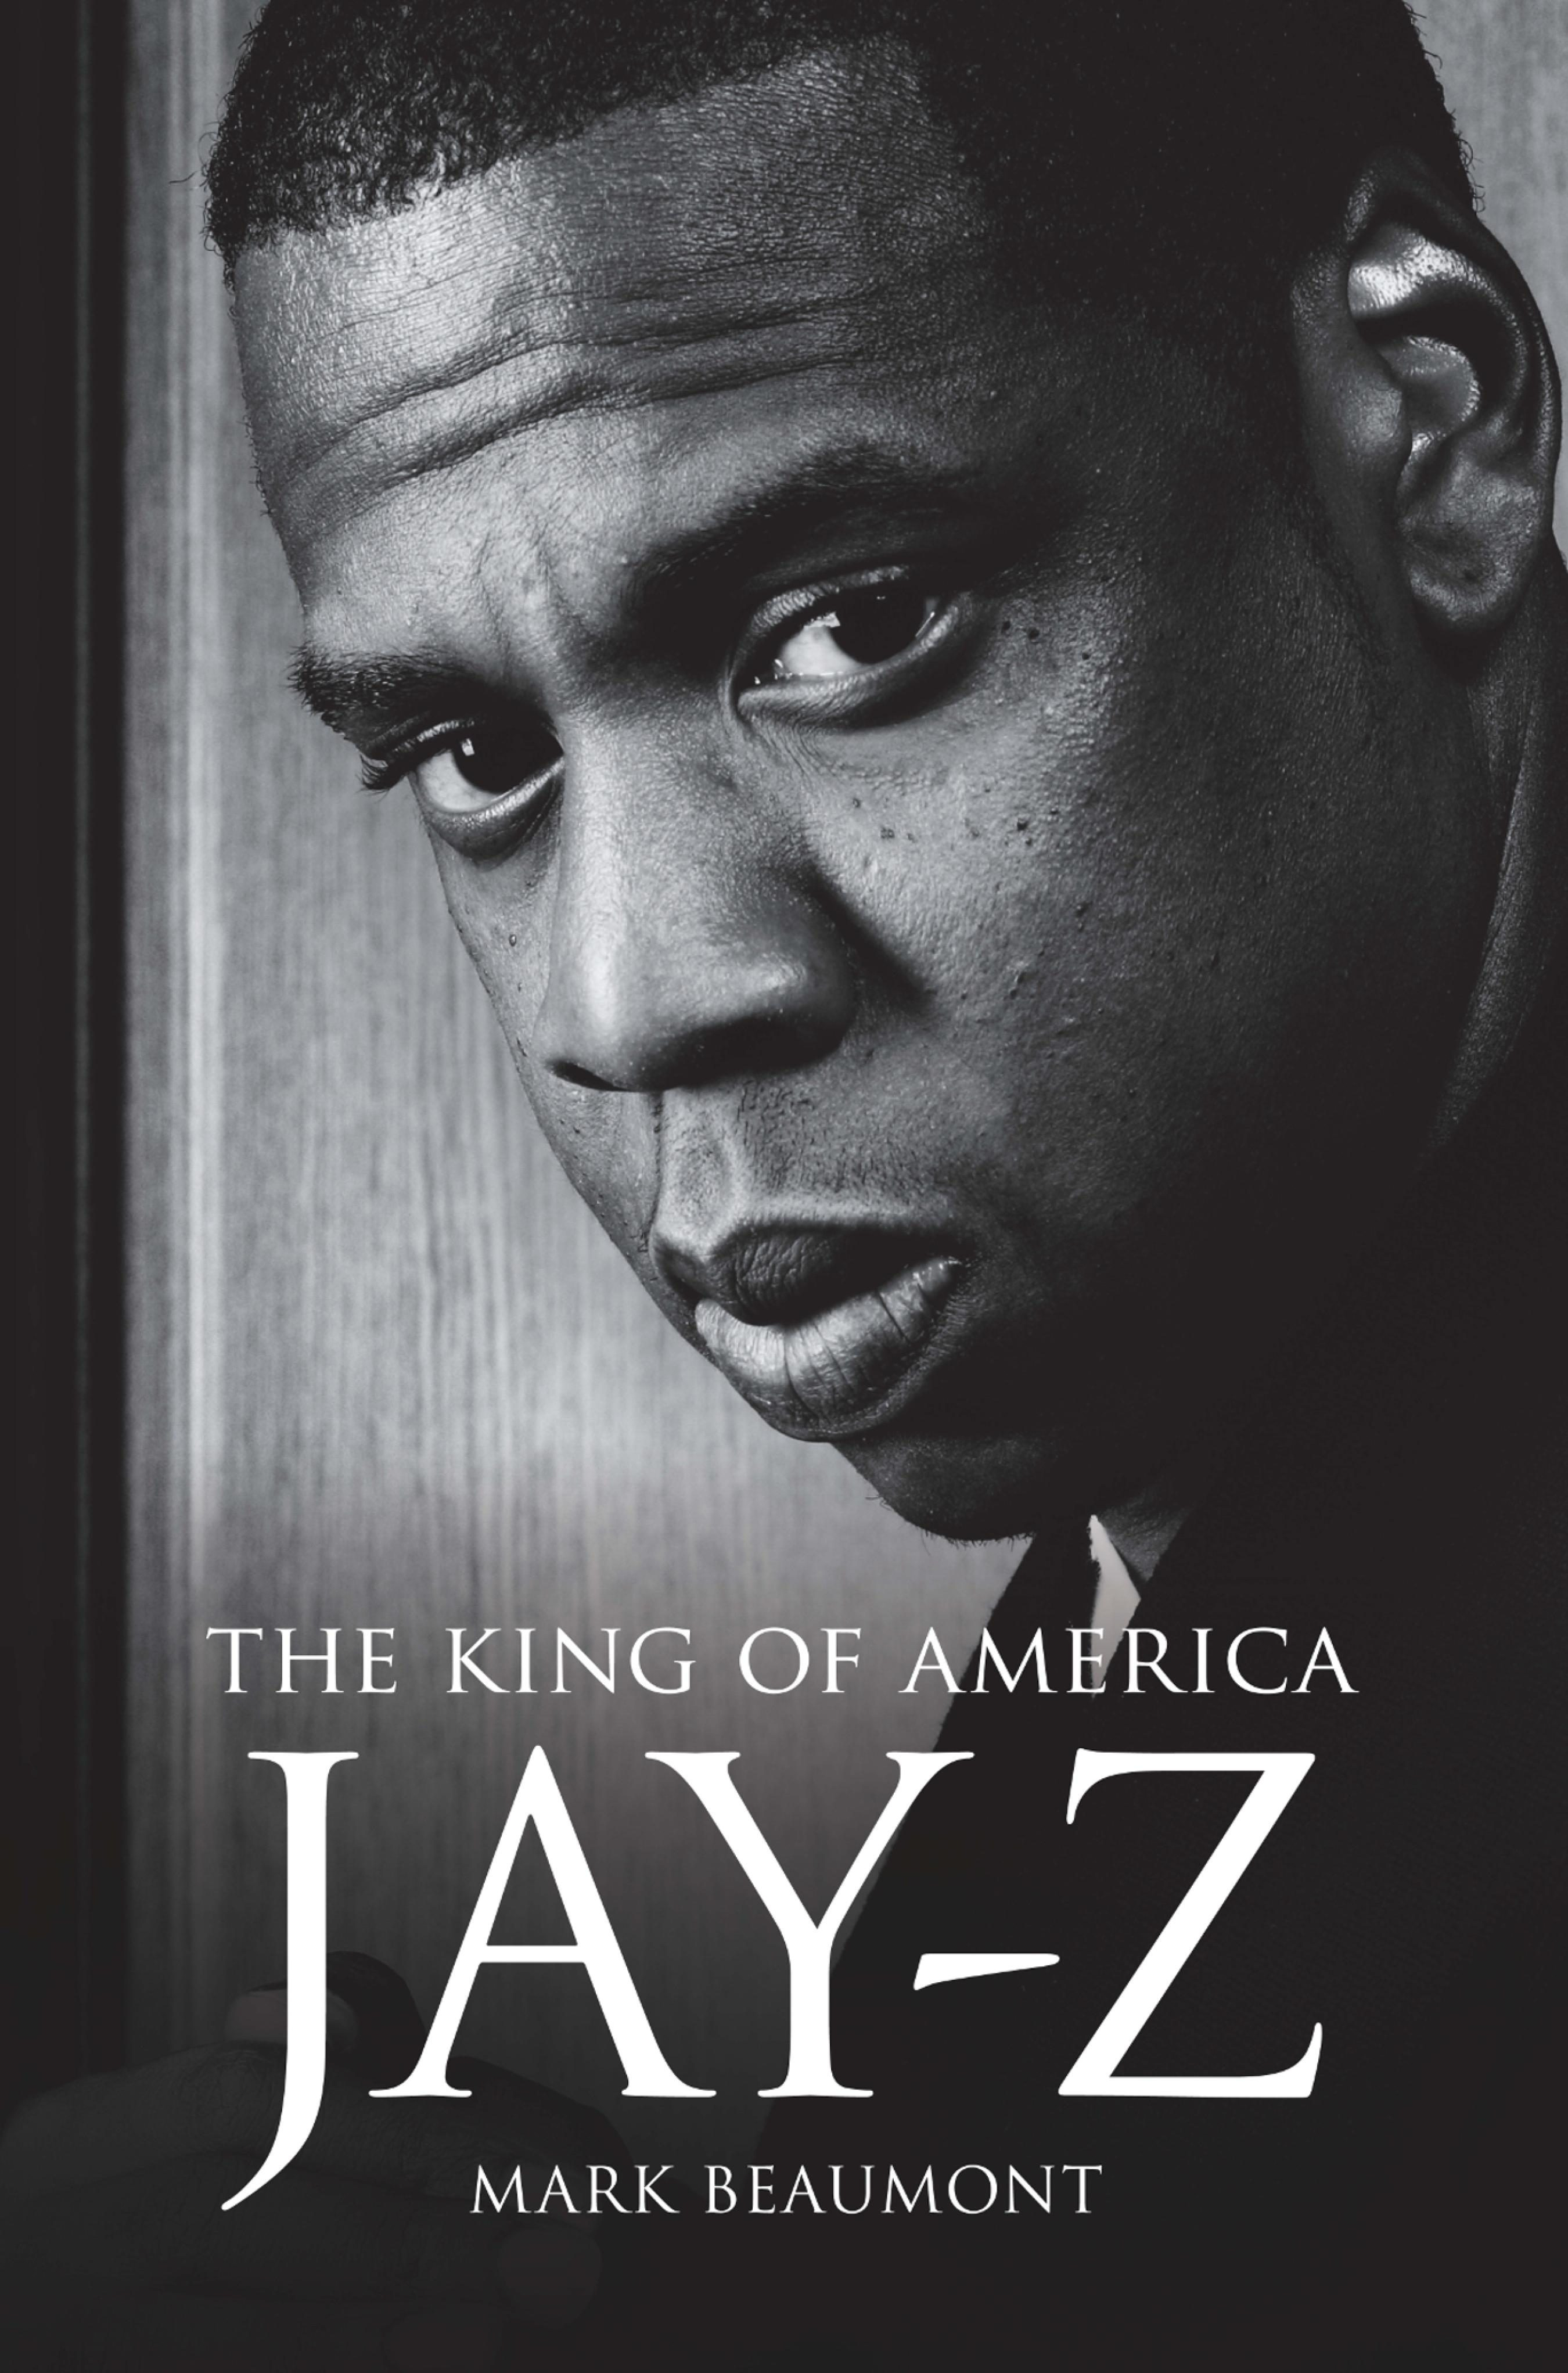 Jay z the king of america ebook descargar libro pdf o epub jay z the king of america ebook 9780857127921 malvernweather Image collections